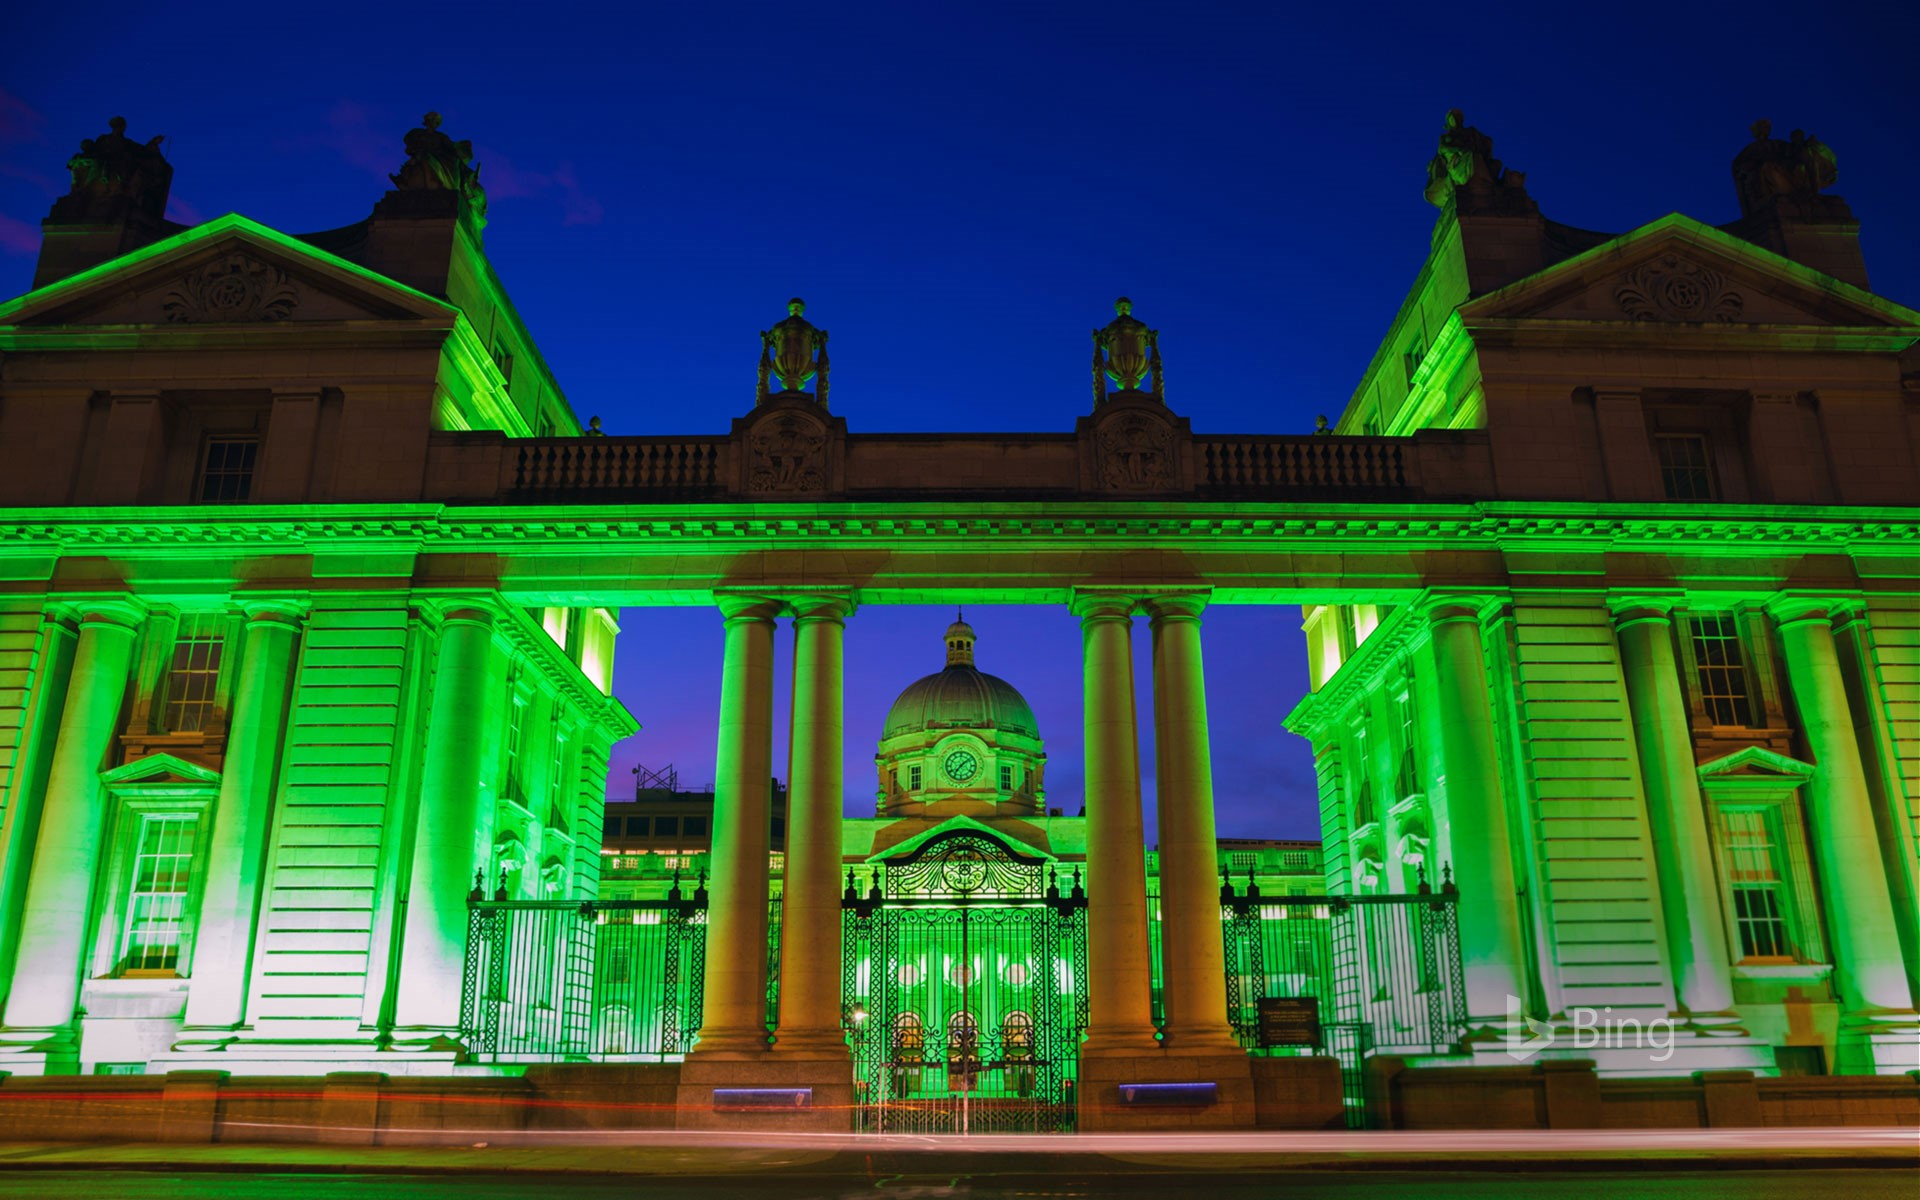 Department of the Taoiseach lit up for the St Patrick's Festival in Dublin, Ireland (© David Soanes Photography/Getty Images)